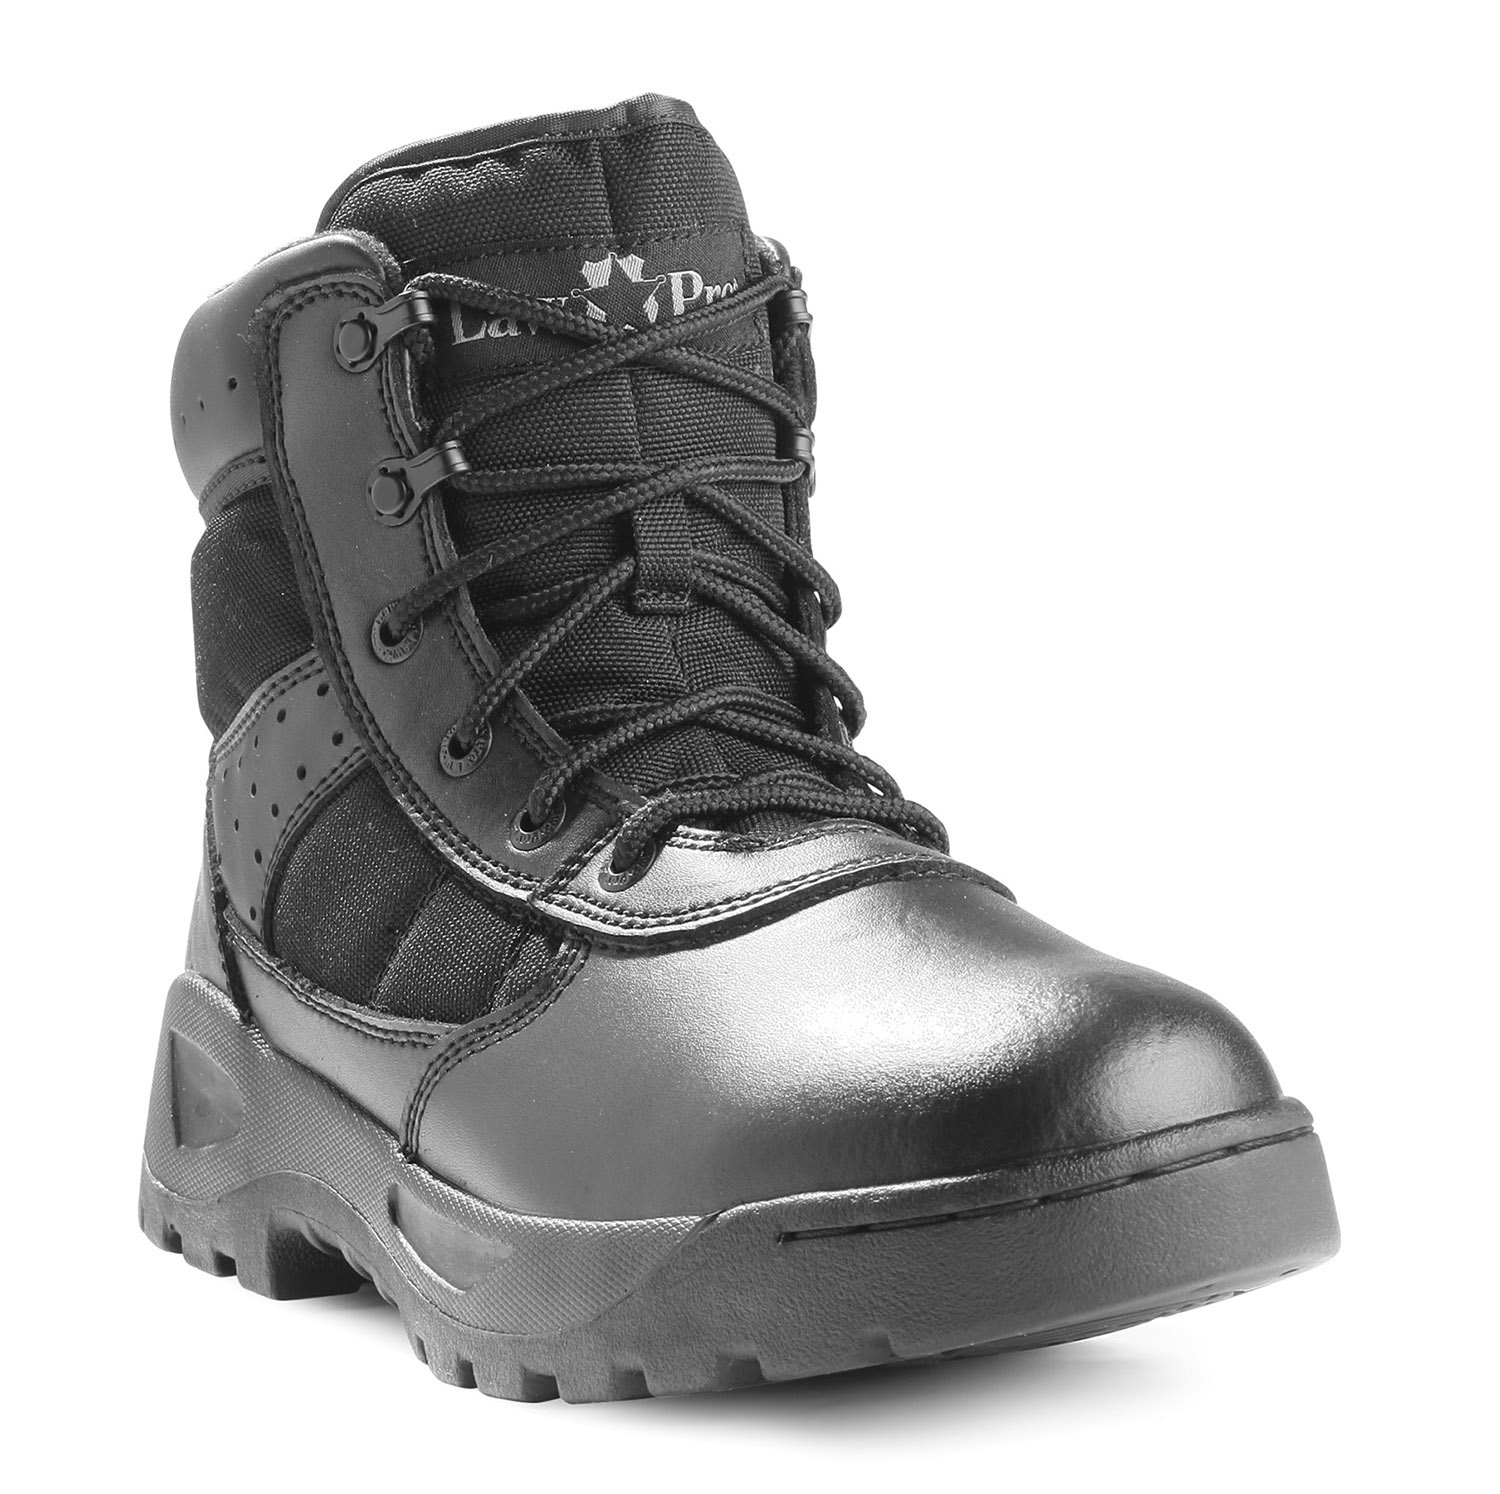 "LawPro 6"" Dispatch 2.0 Side Zip Boot"